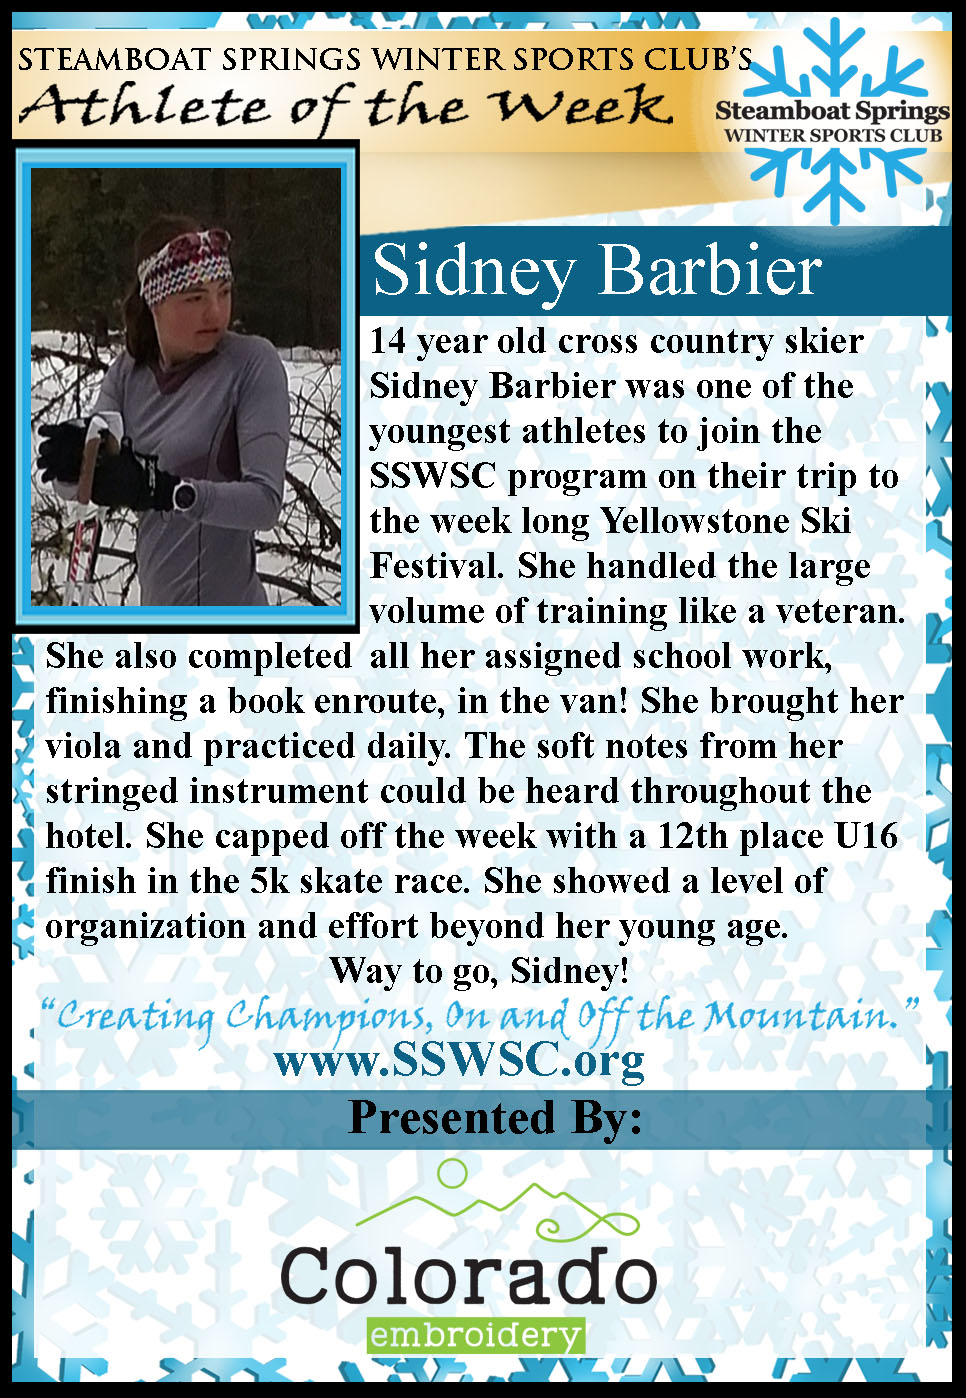 Athlete of the Week Sidney Barbier